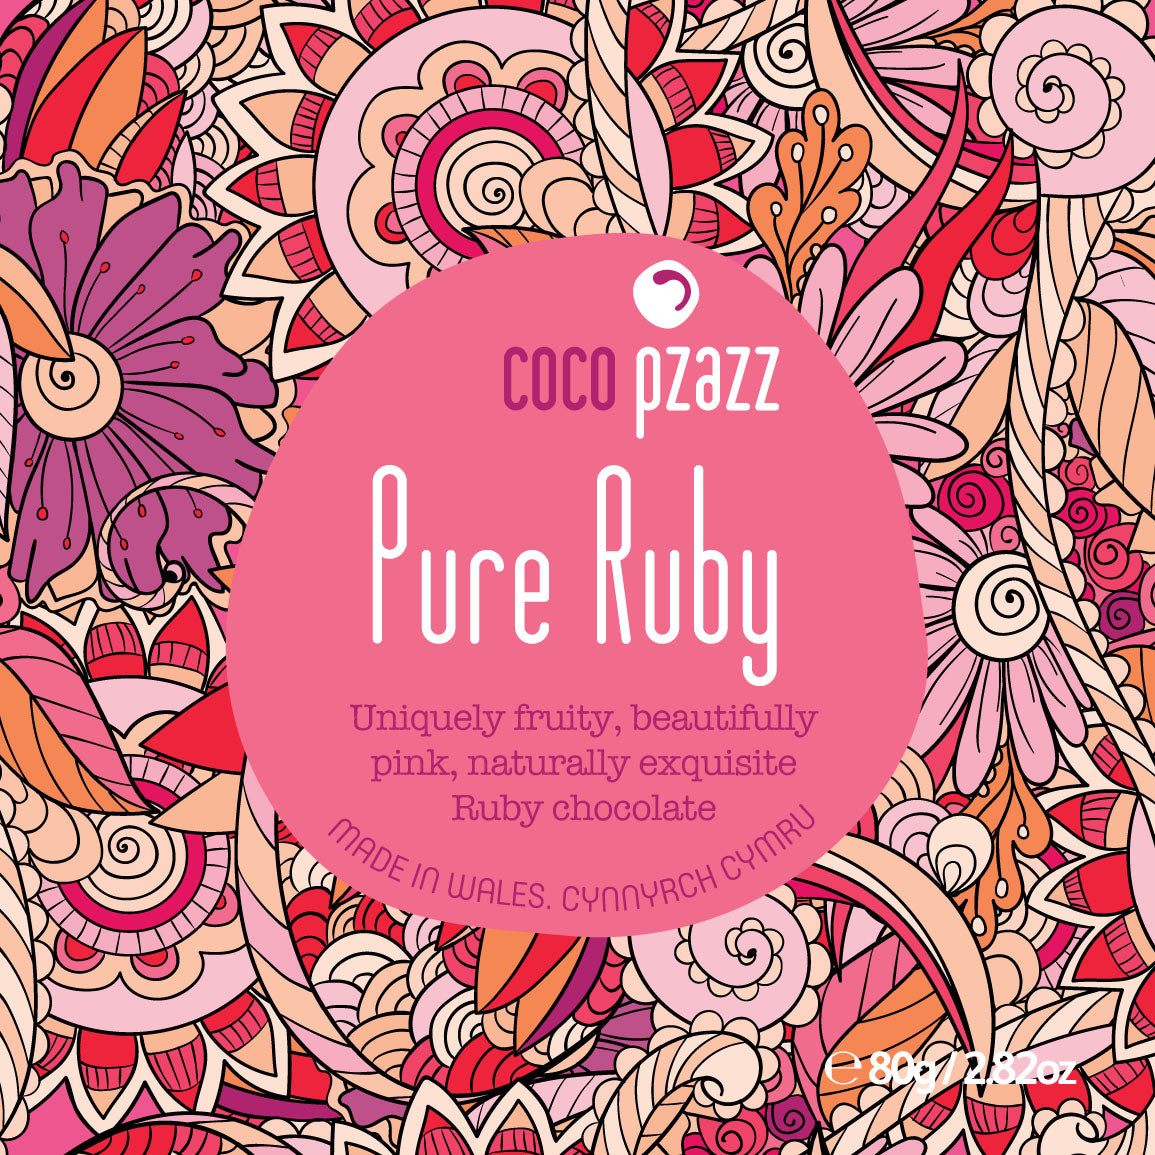 Coco Pzazz Pure Ruby Chocolate Bar 80g